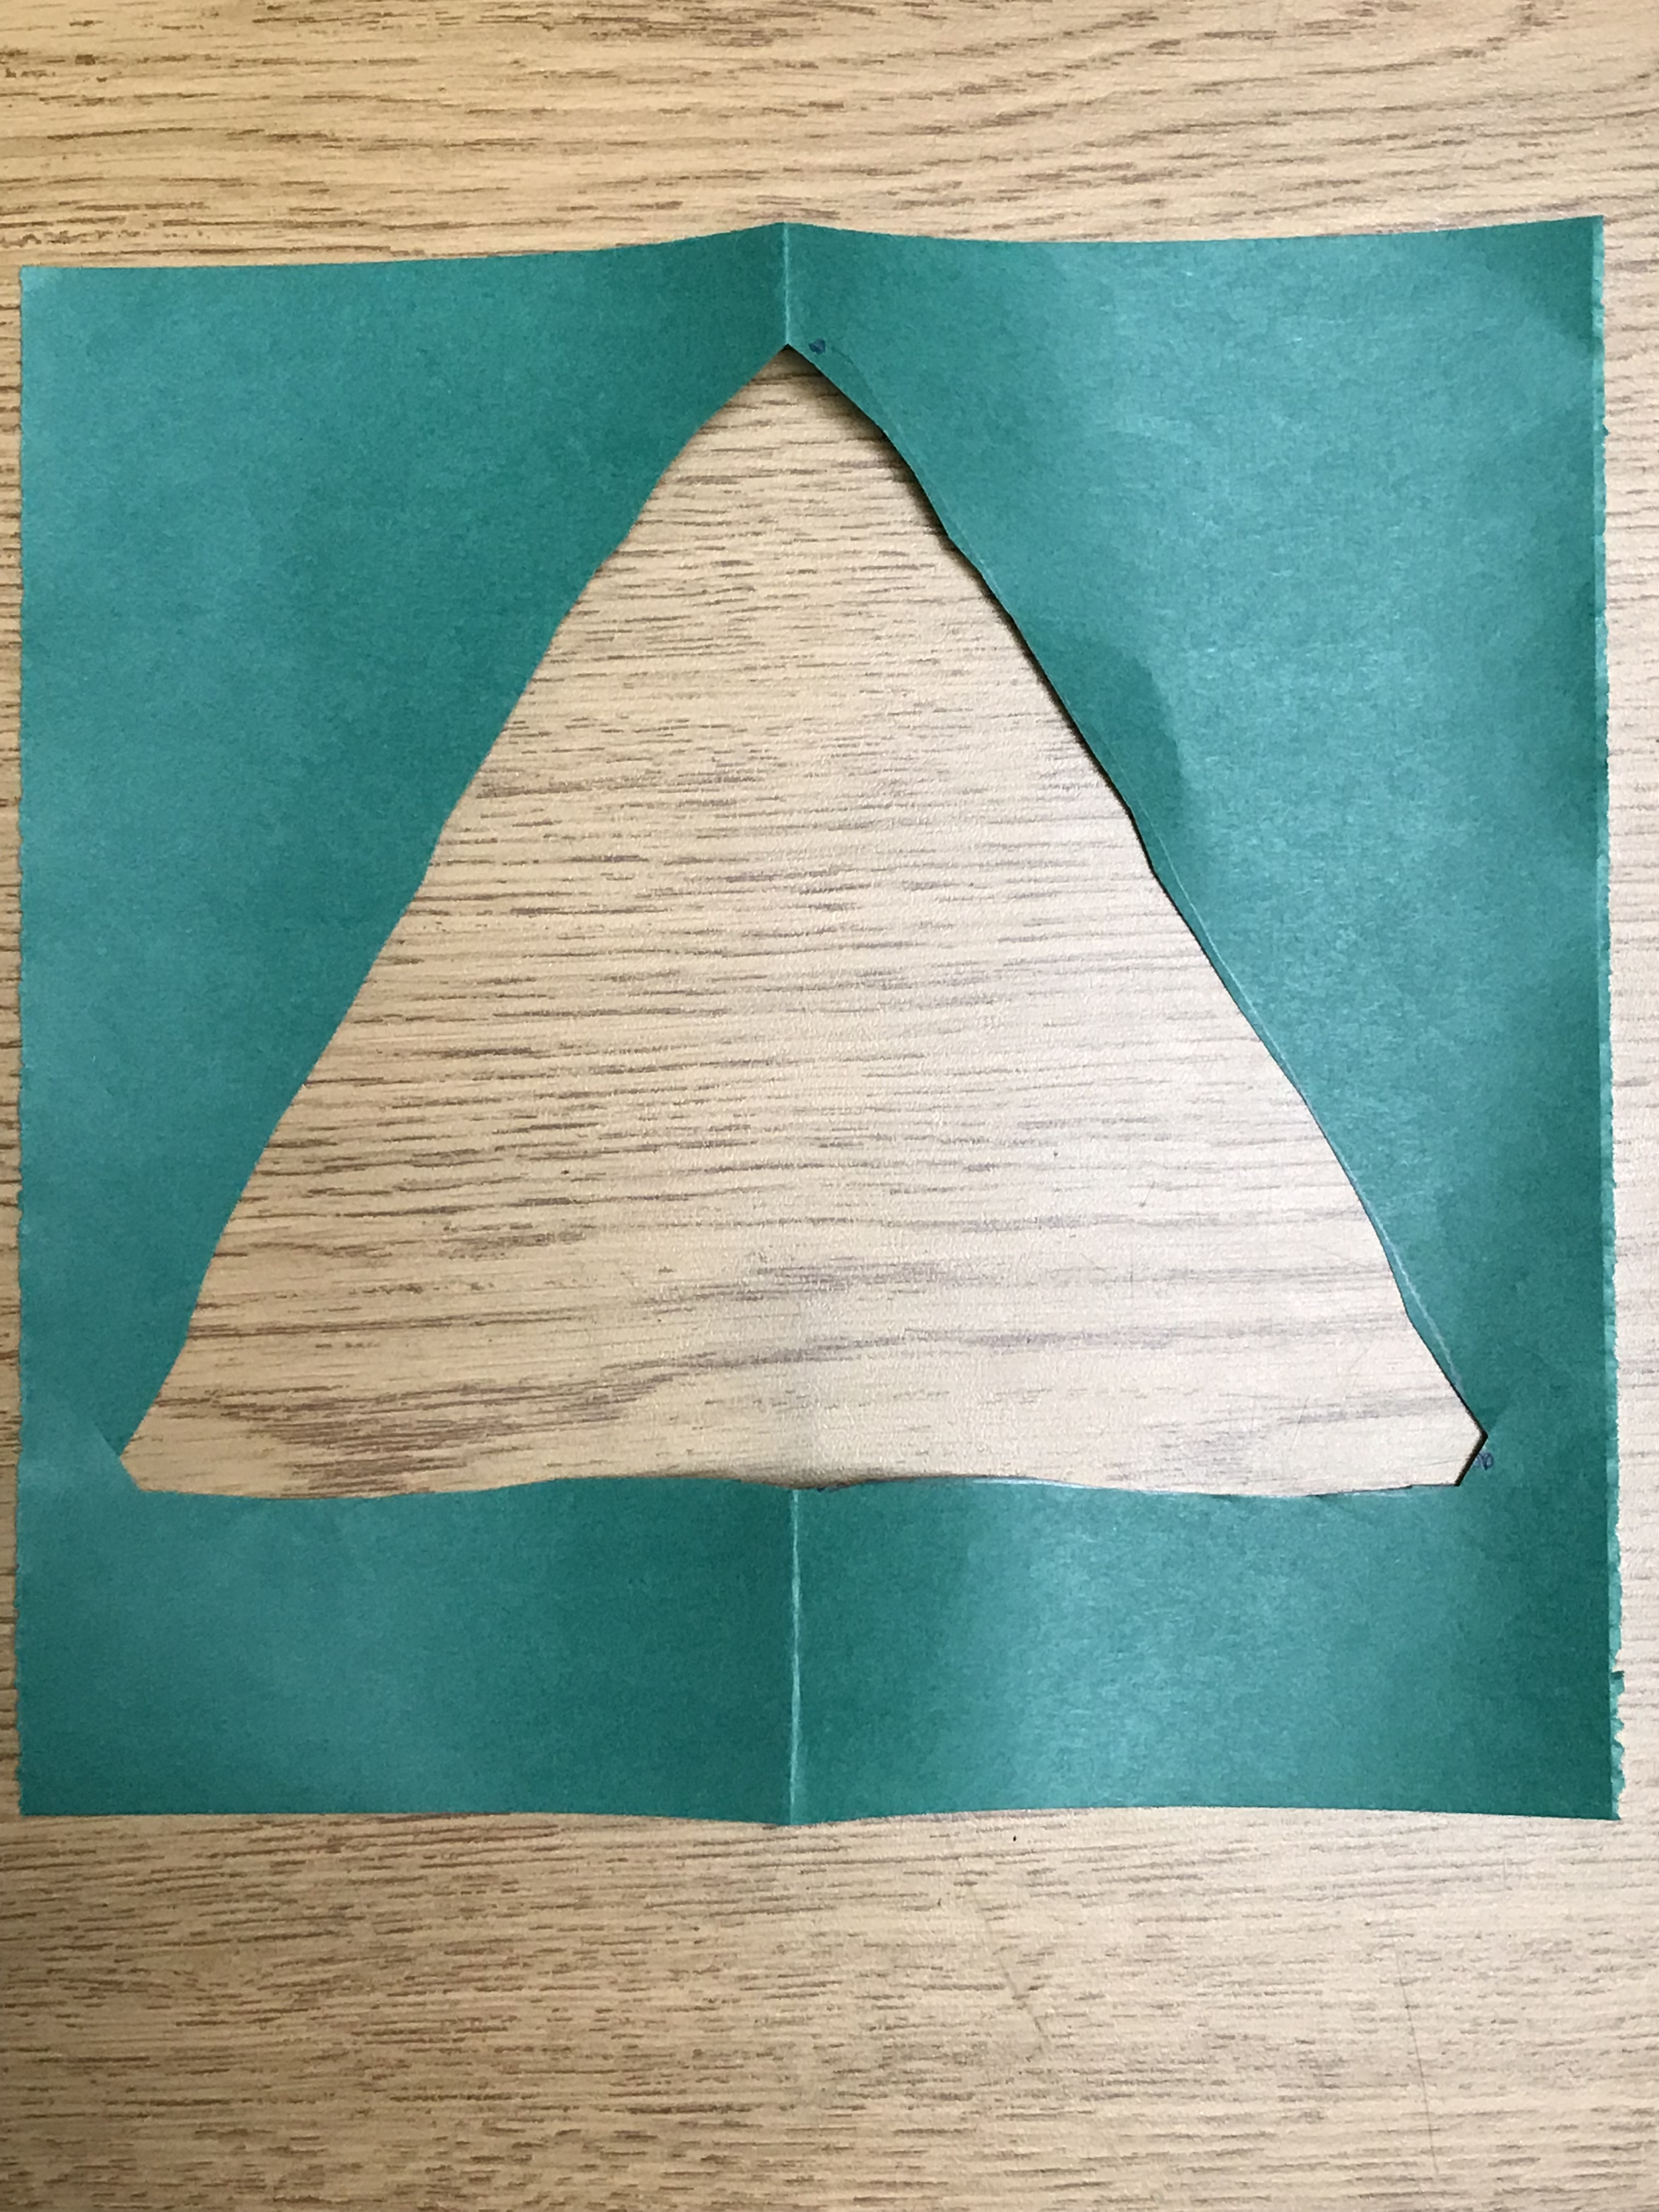 Paper Christmas tree outline